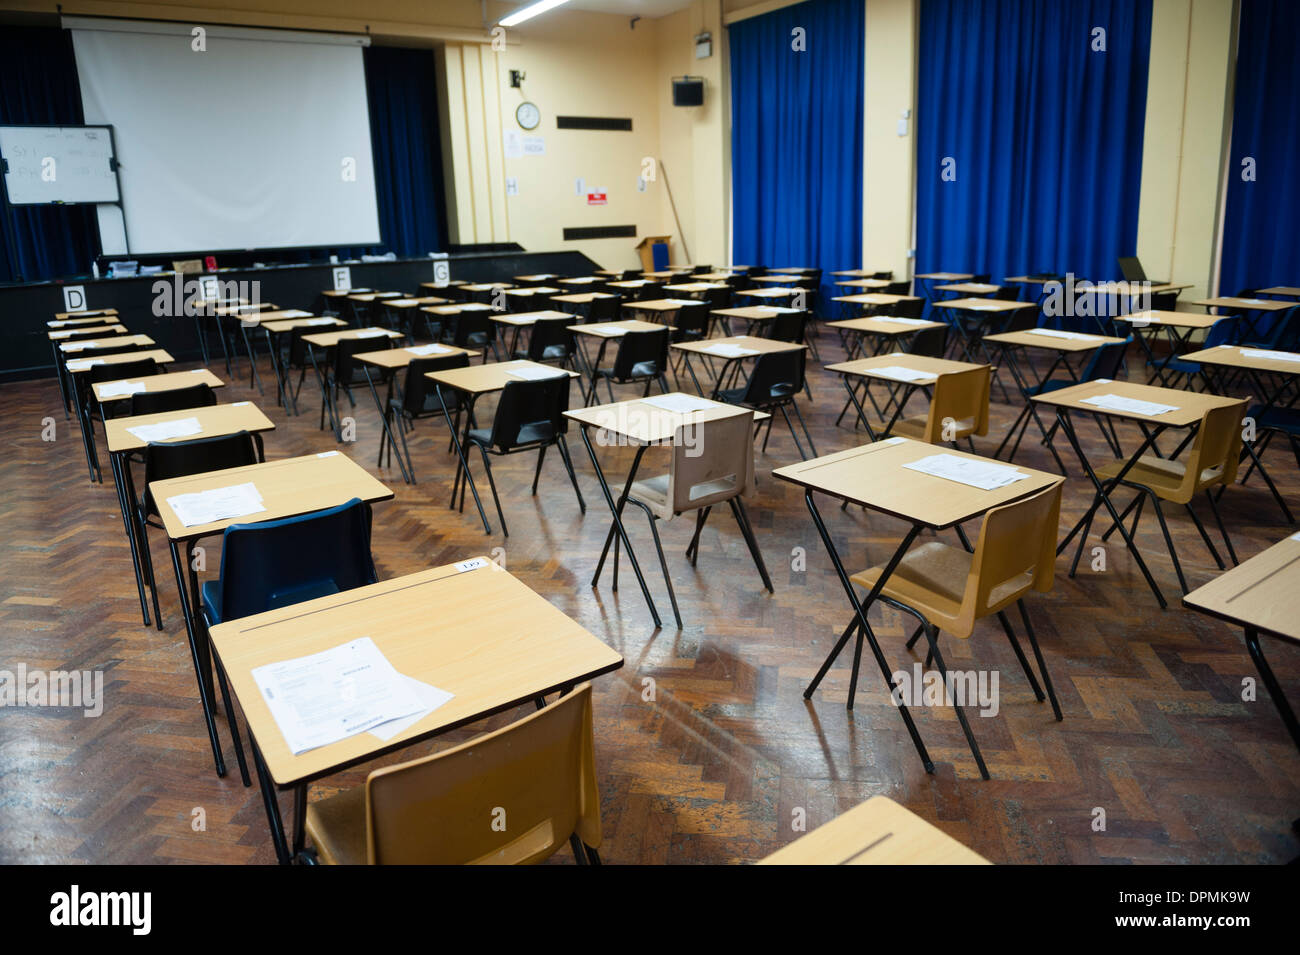 rows of desks with examinations ready in school gymnasium stock